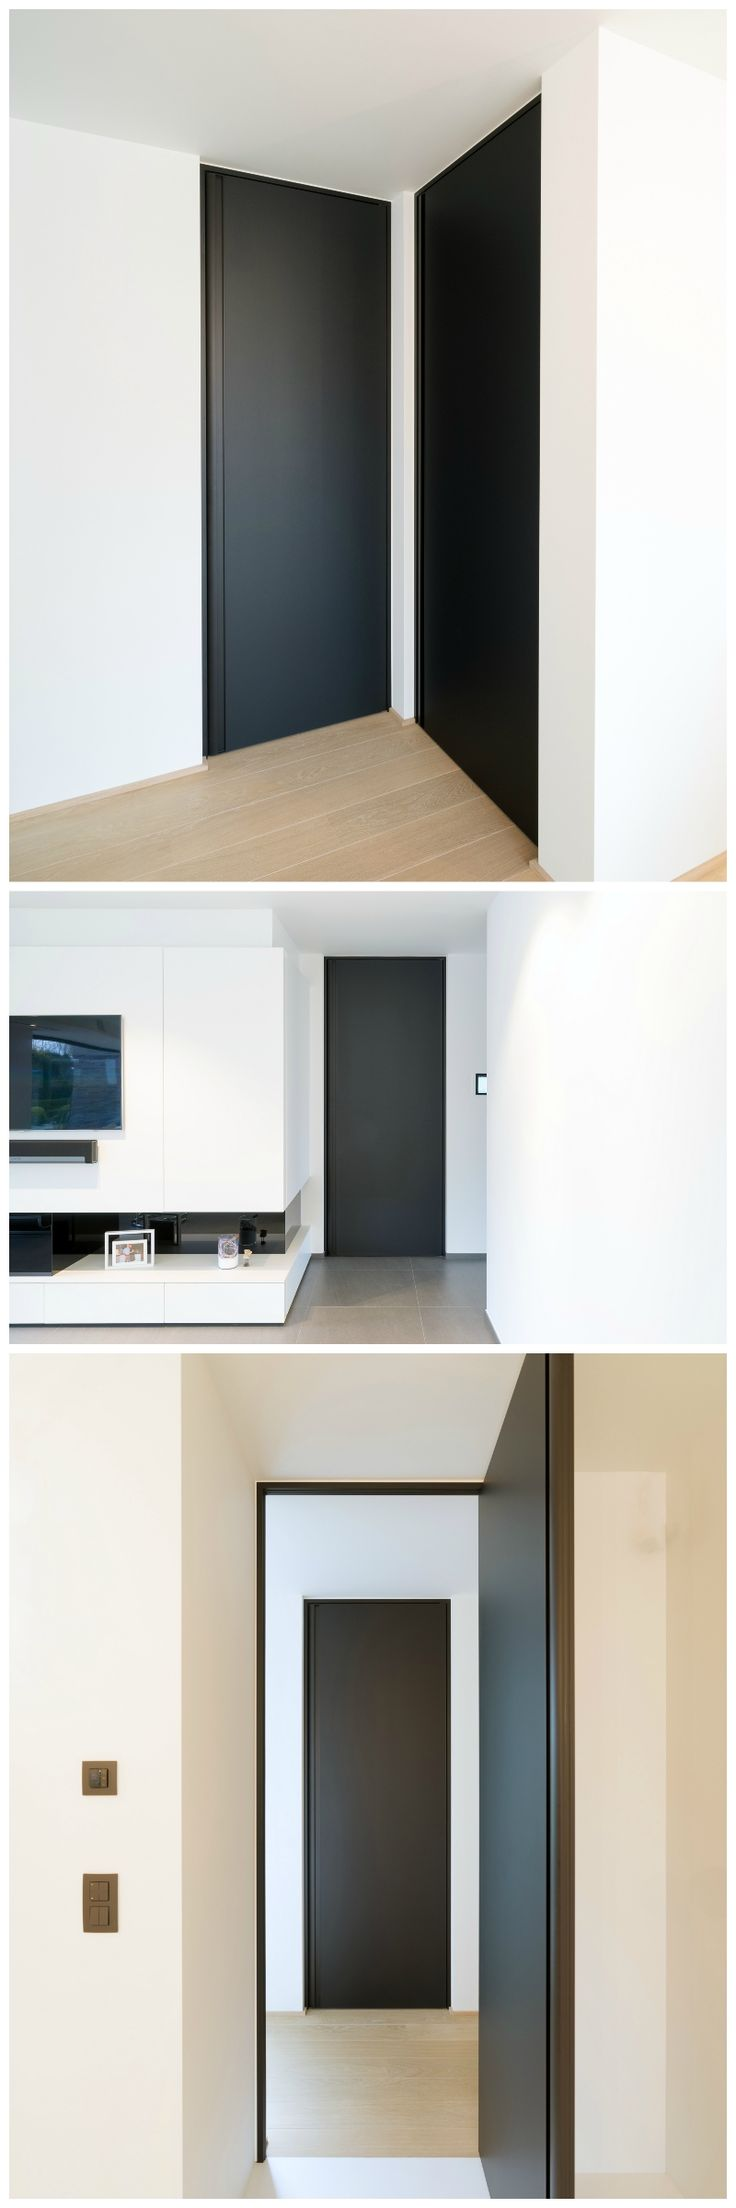 Love the simplicity of these doors!